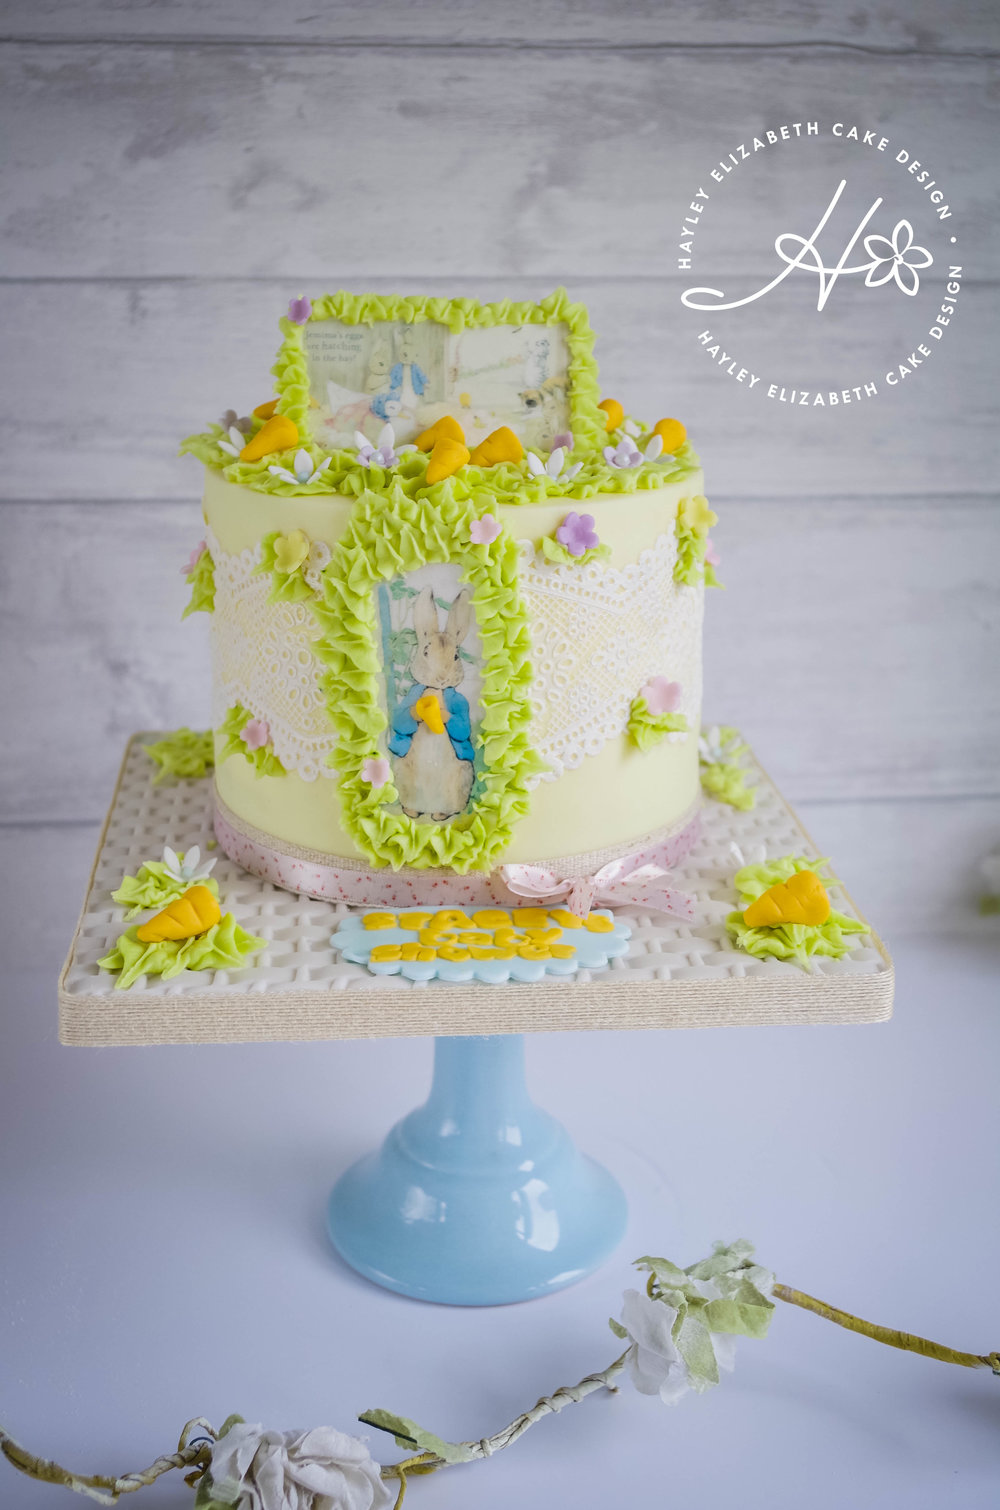 beatrix potter baby shower cake.jpg